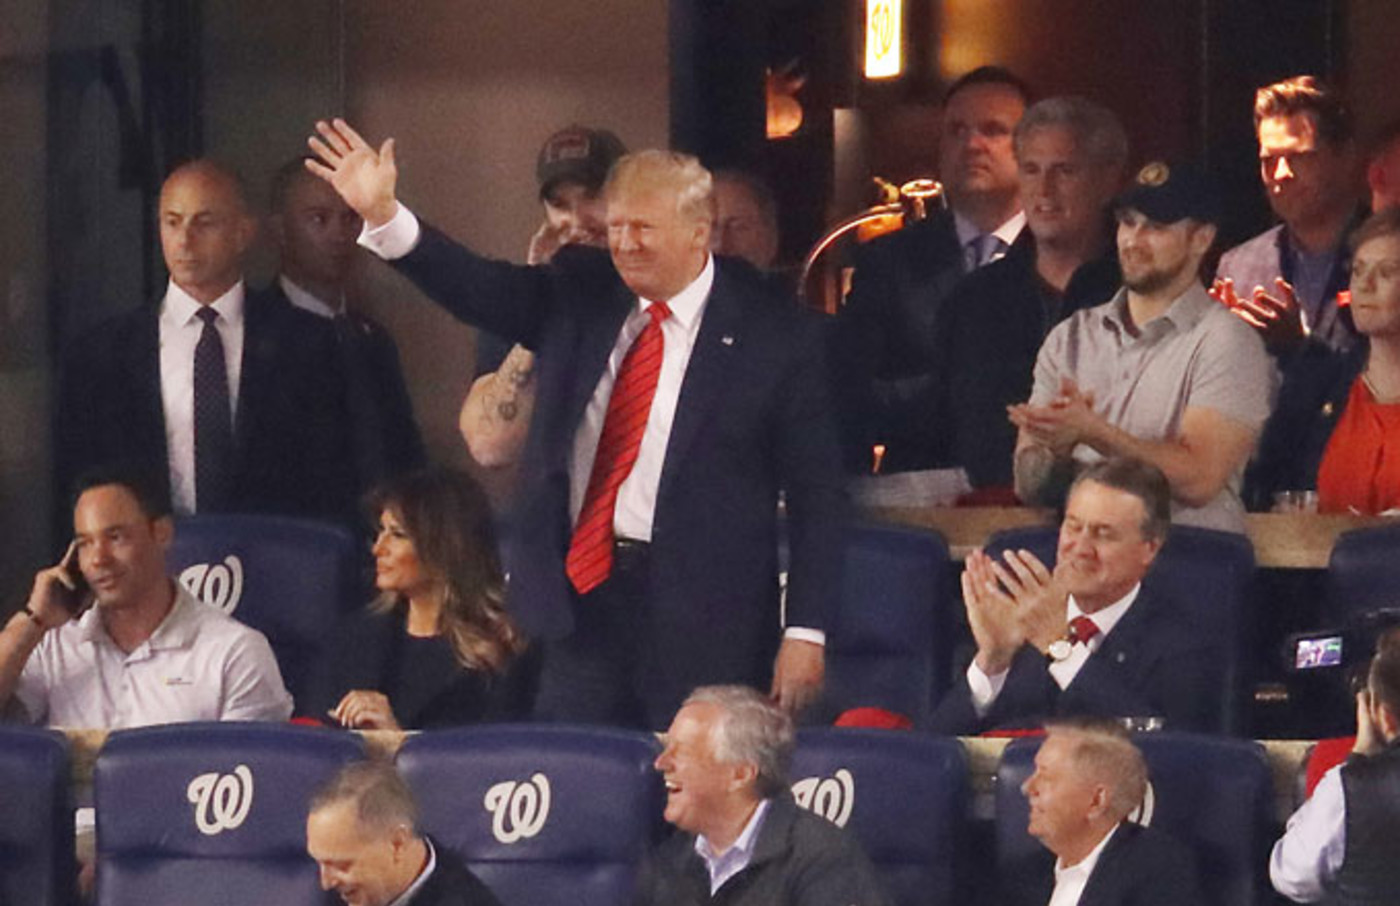 Donald Trump booth at the World Series